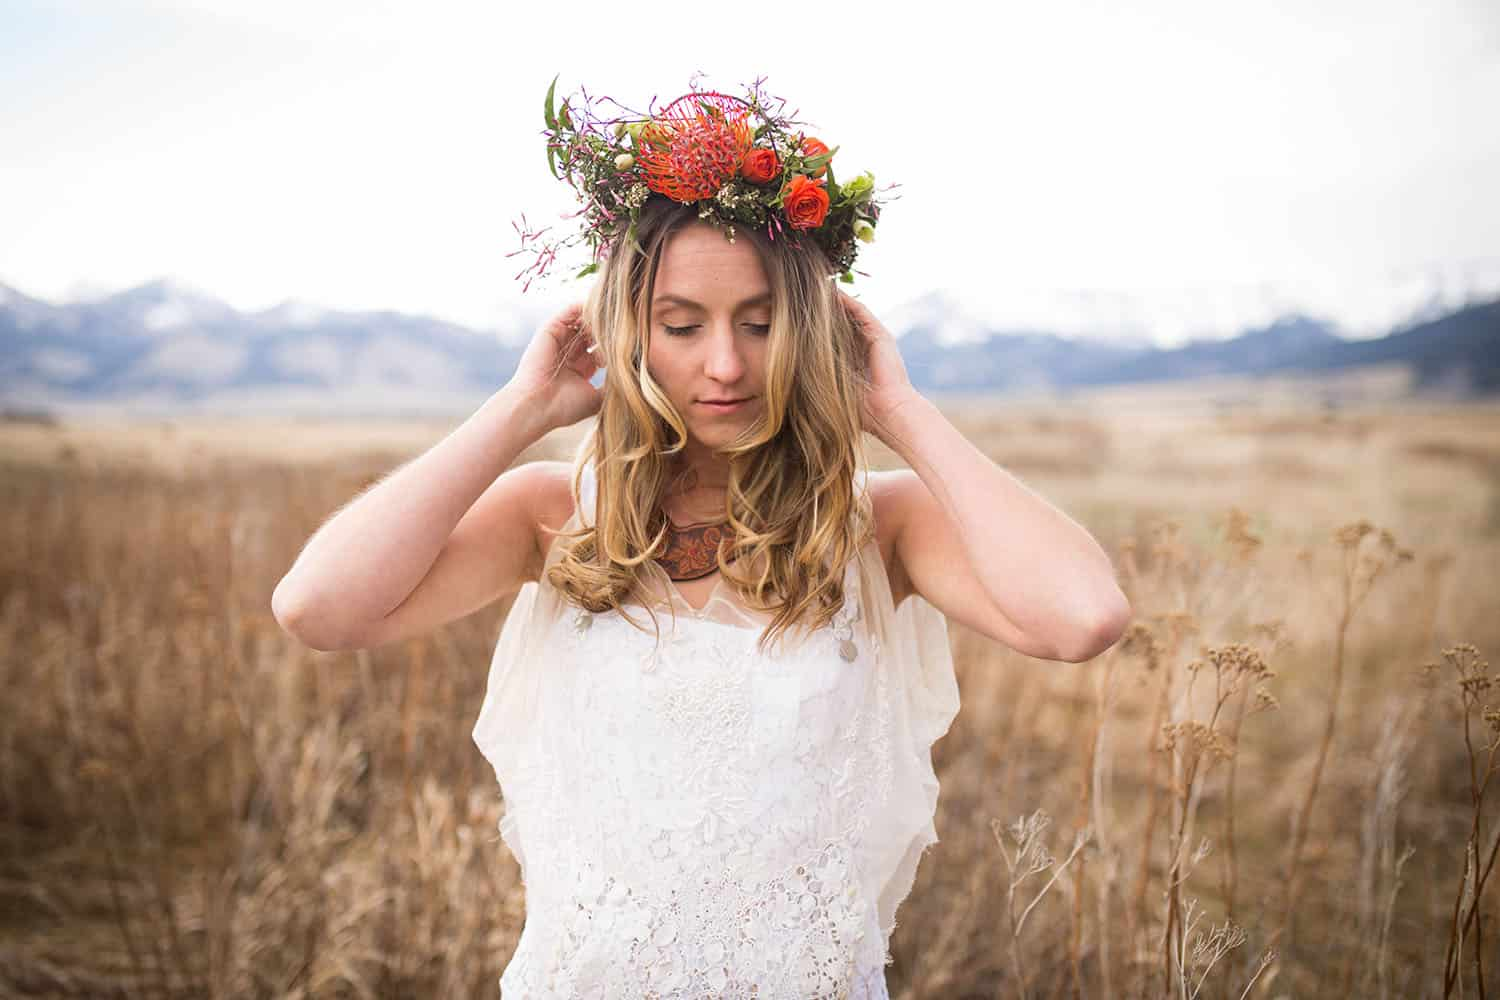 Color half-length photograph of a blonde bride wearing white overalls, a veil, and a flower crown, standing in open shade in a large overgrown field with mountains in the background.